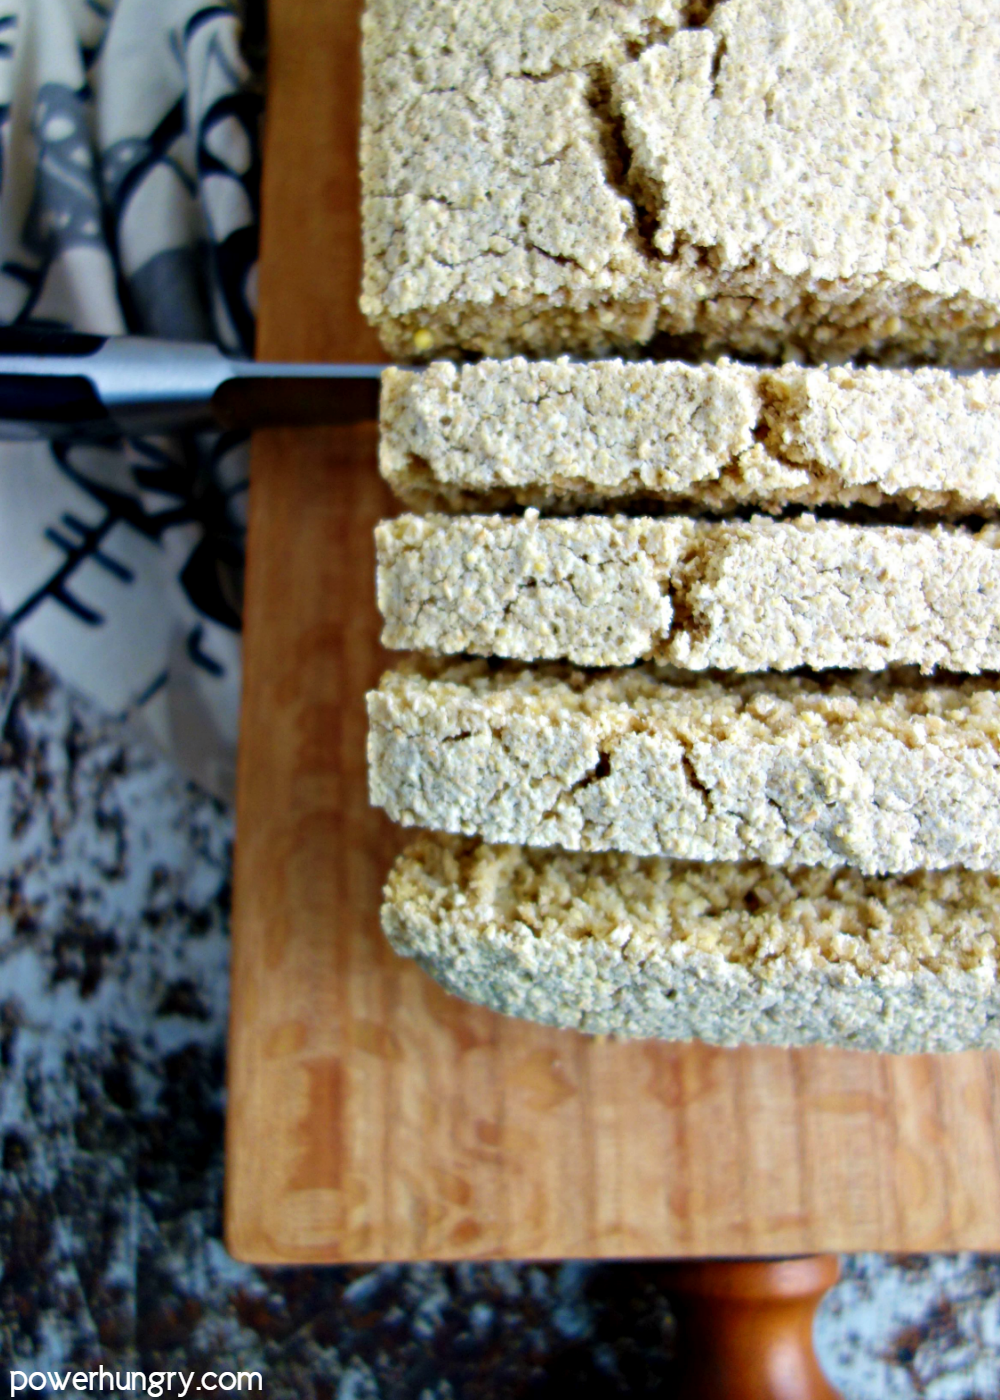 close-up of sliced milet oat bread on a wood cutting board